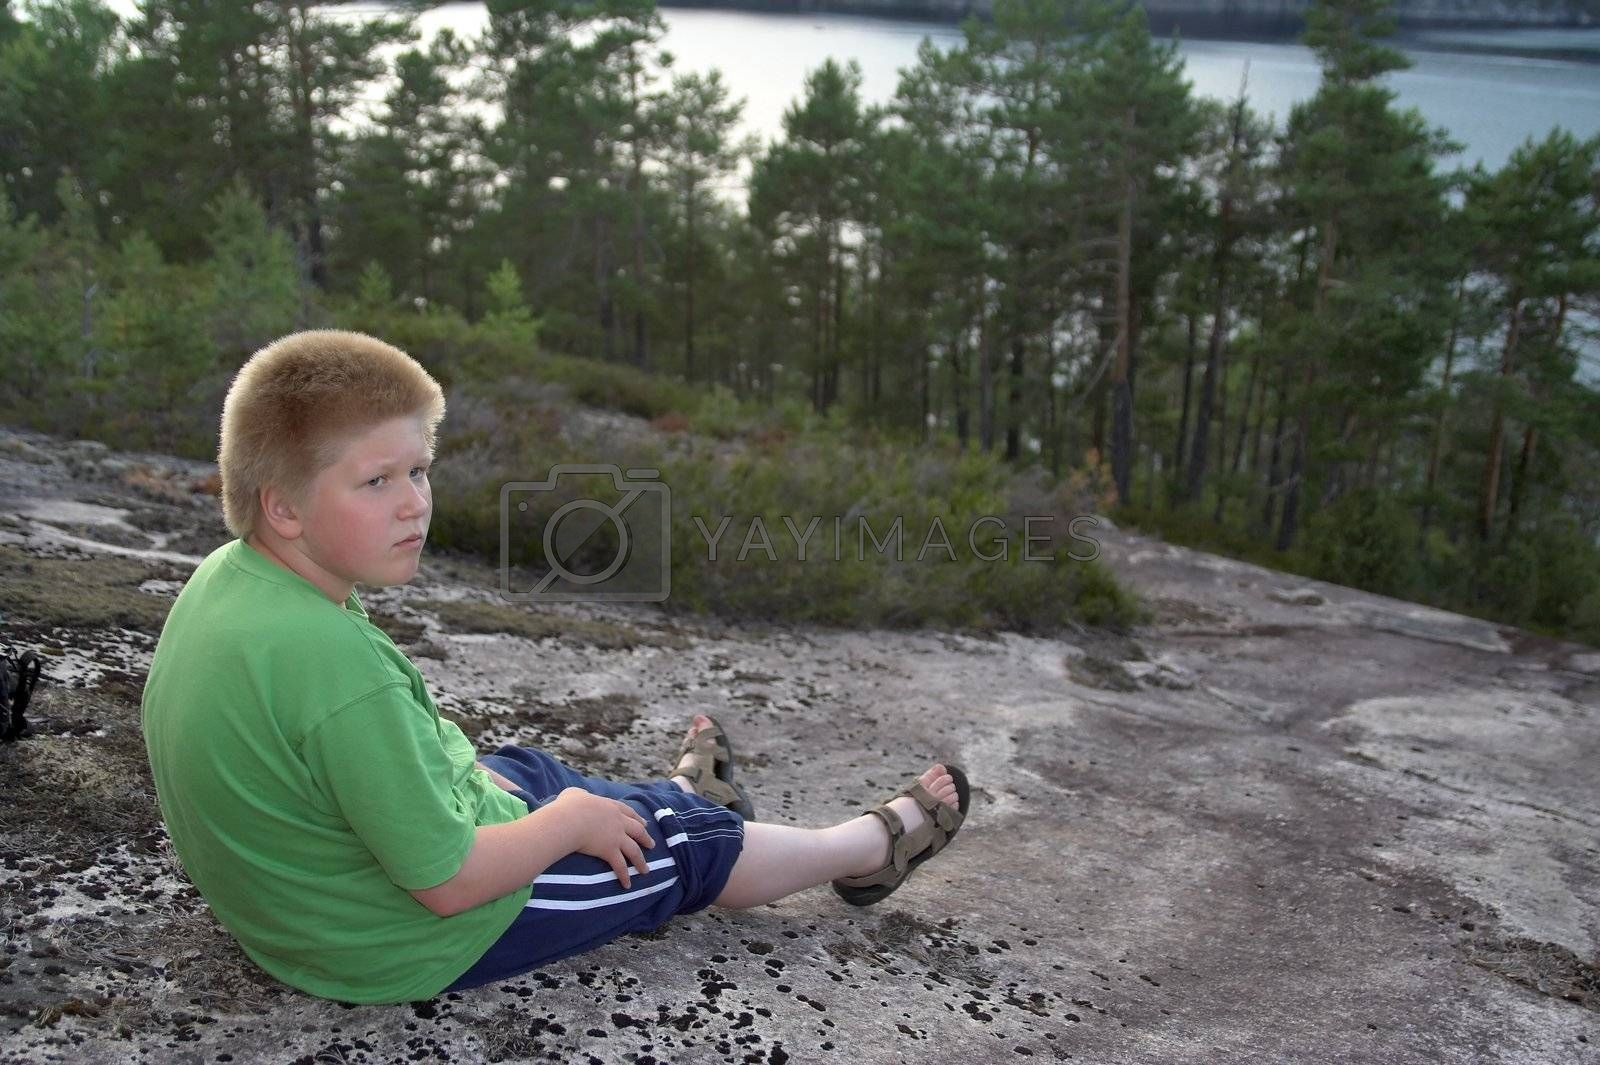 blond boy sitting on the rock above trees and a lake